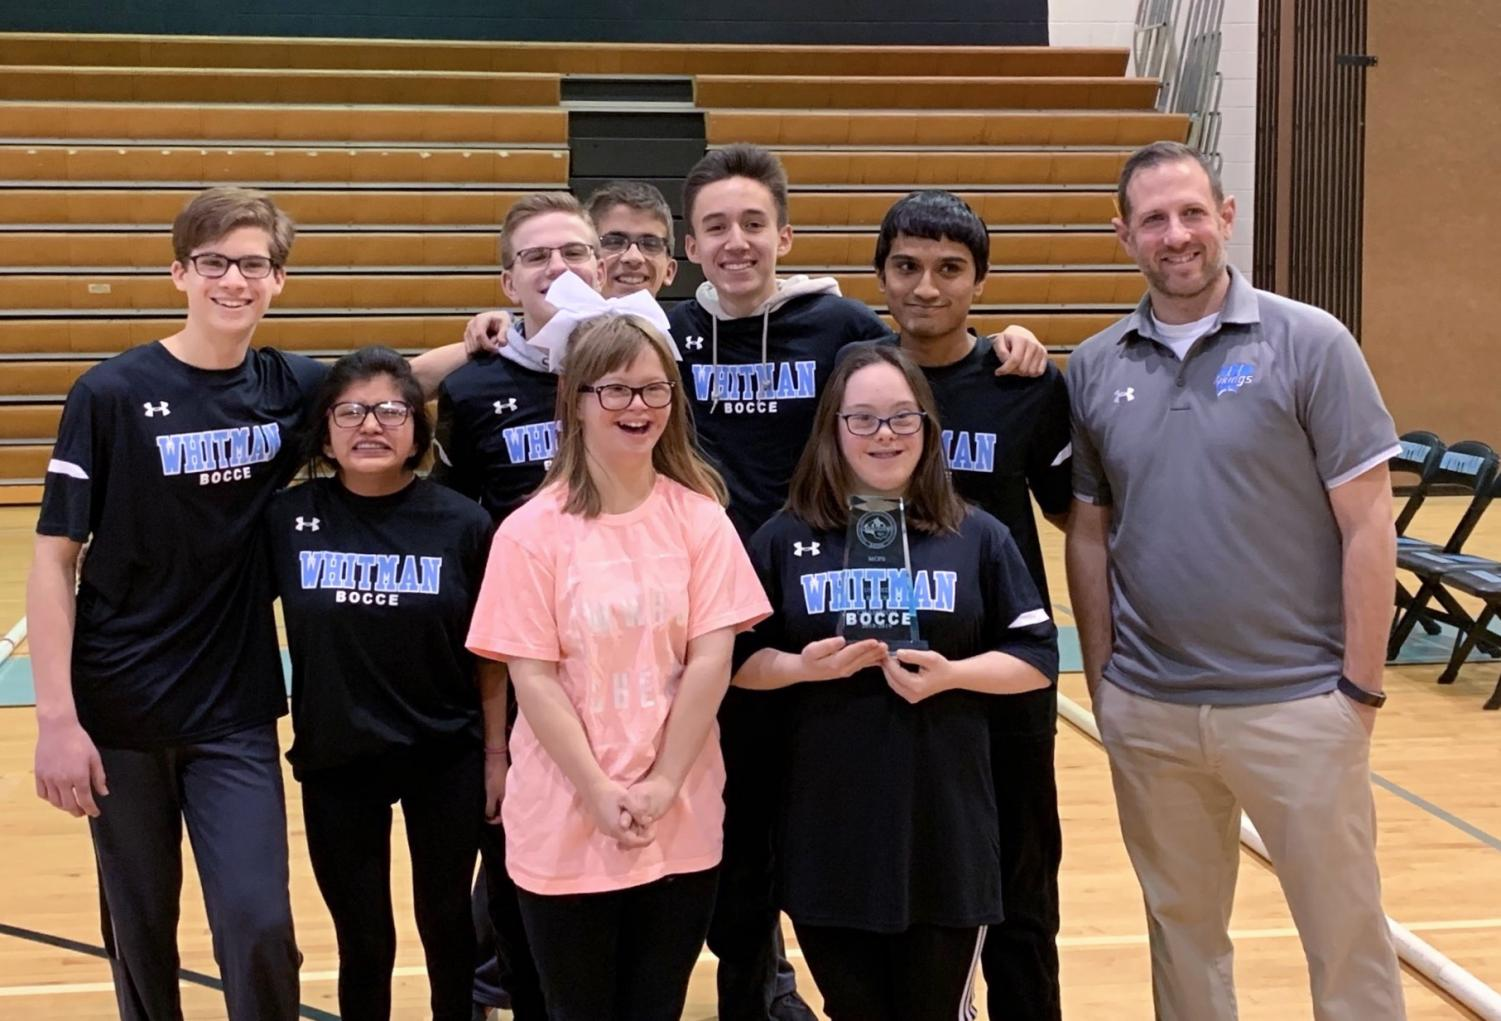 The bocce team poses with their trophy after winning the divisional championship last Saturday.  The win earned the team their second straight division title.